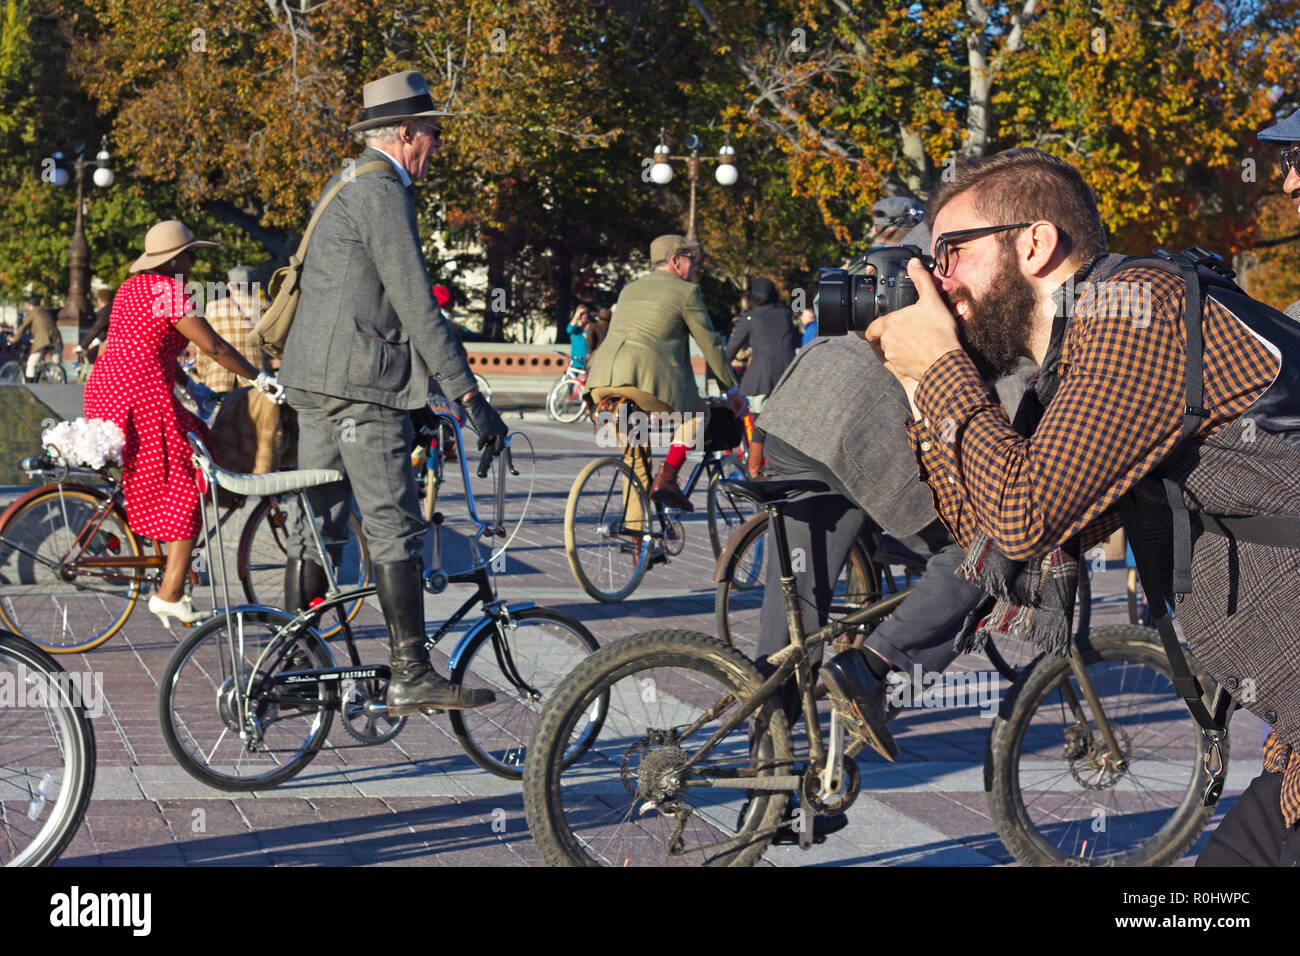 Washington DC, USA. 4th Nov 2018. Photographer at work during DC's 2nd Tweed Ride event. The Ride of cyclists who refuse to endure anymore spandex and feel great to spin through our beautiful streets in the finest most dapper attire. Credit: Andrei Medvedev/Alamy Live News - Stock Image